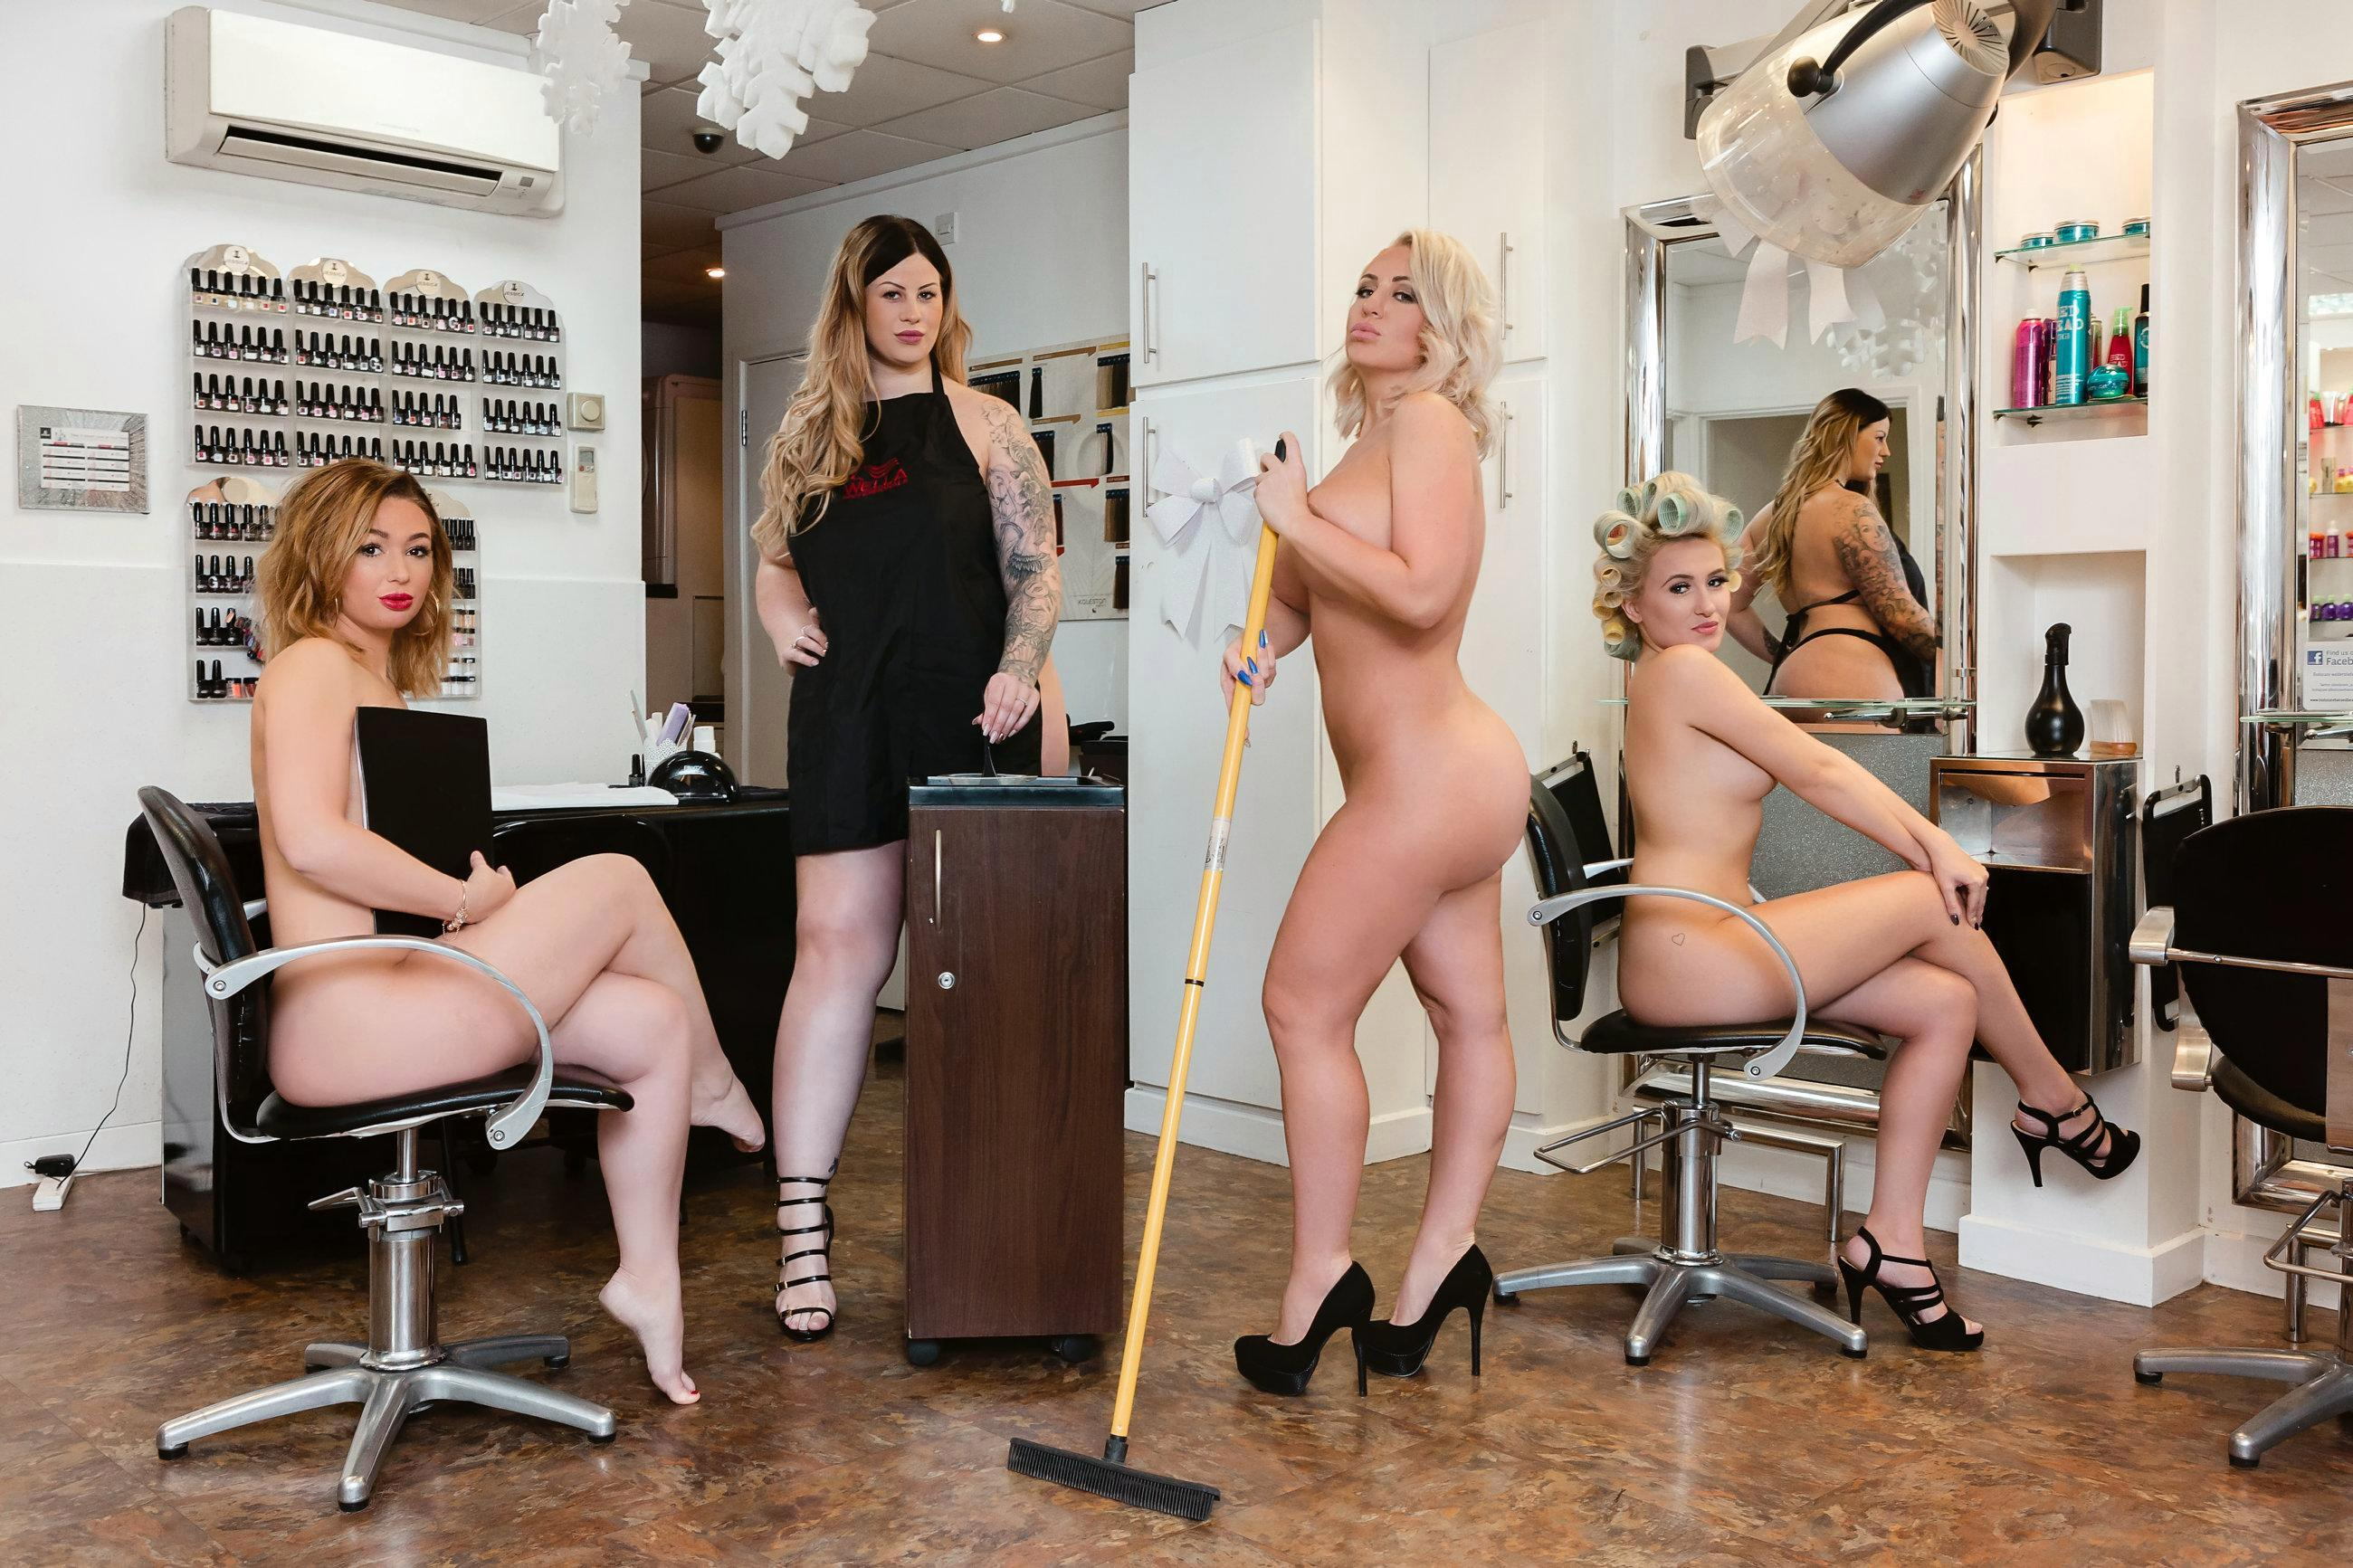 Entire Kent village strips off for saucy calendar to raise money for charity